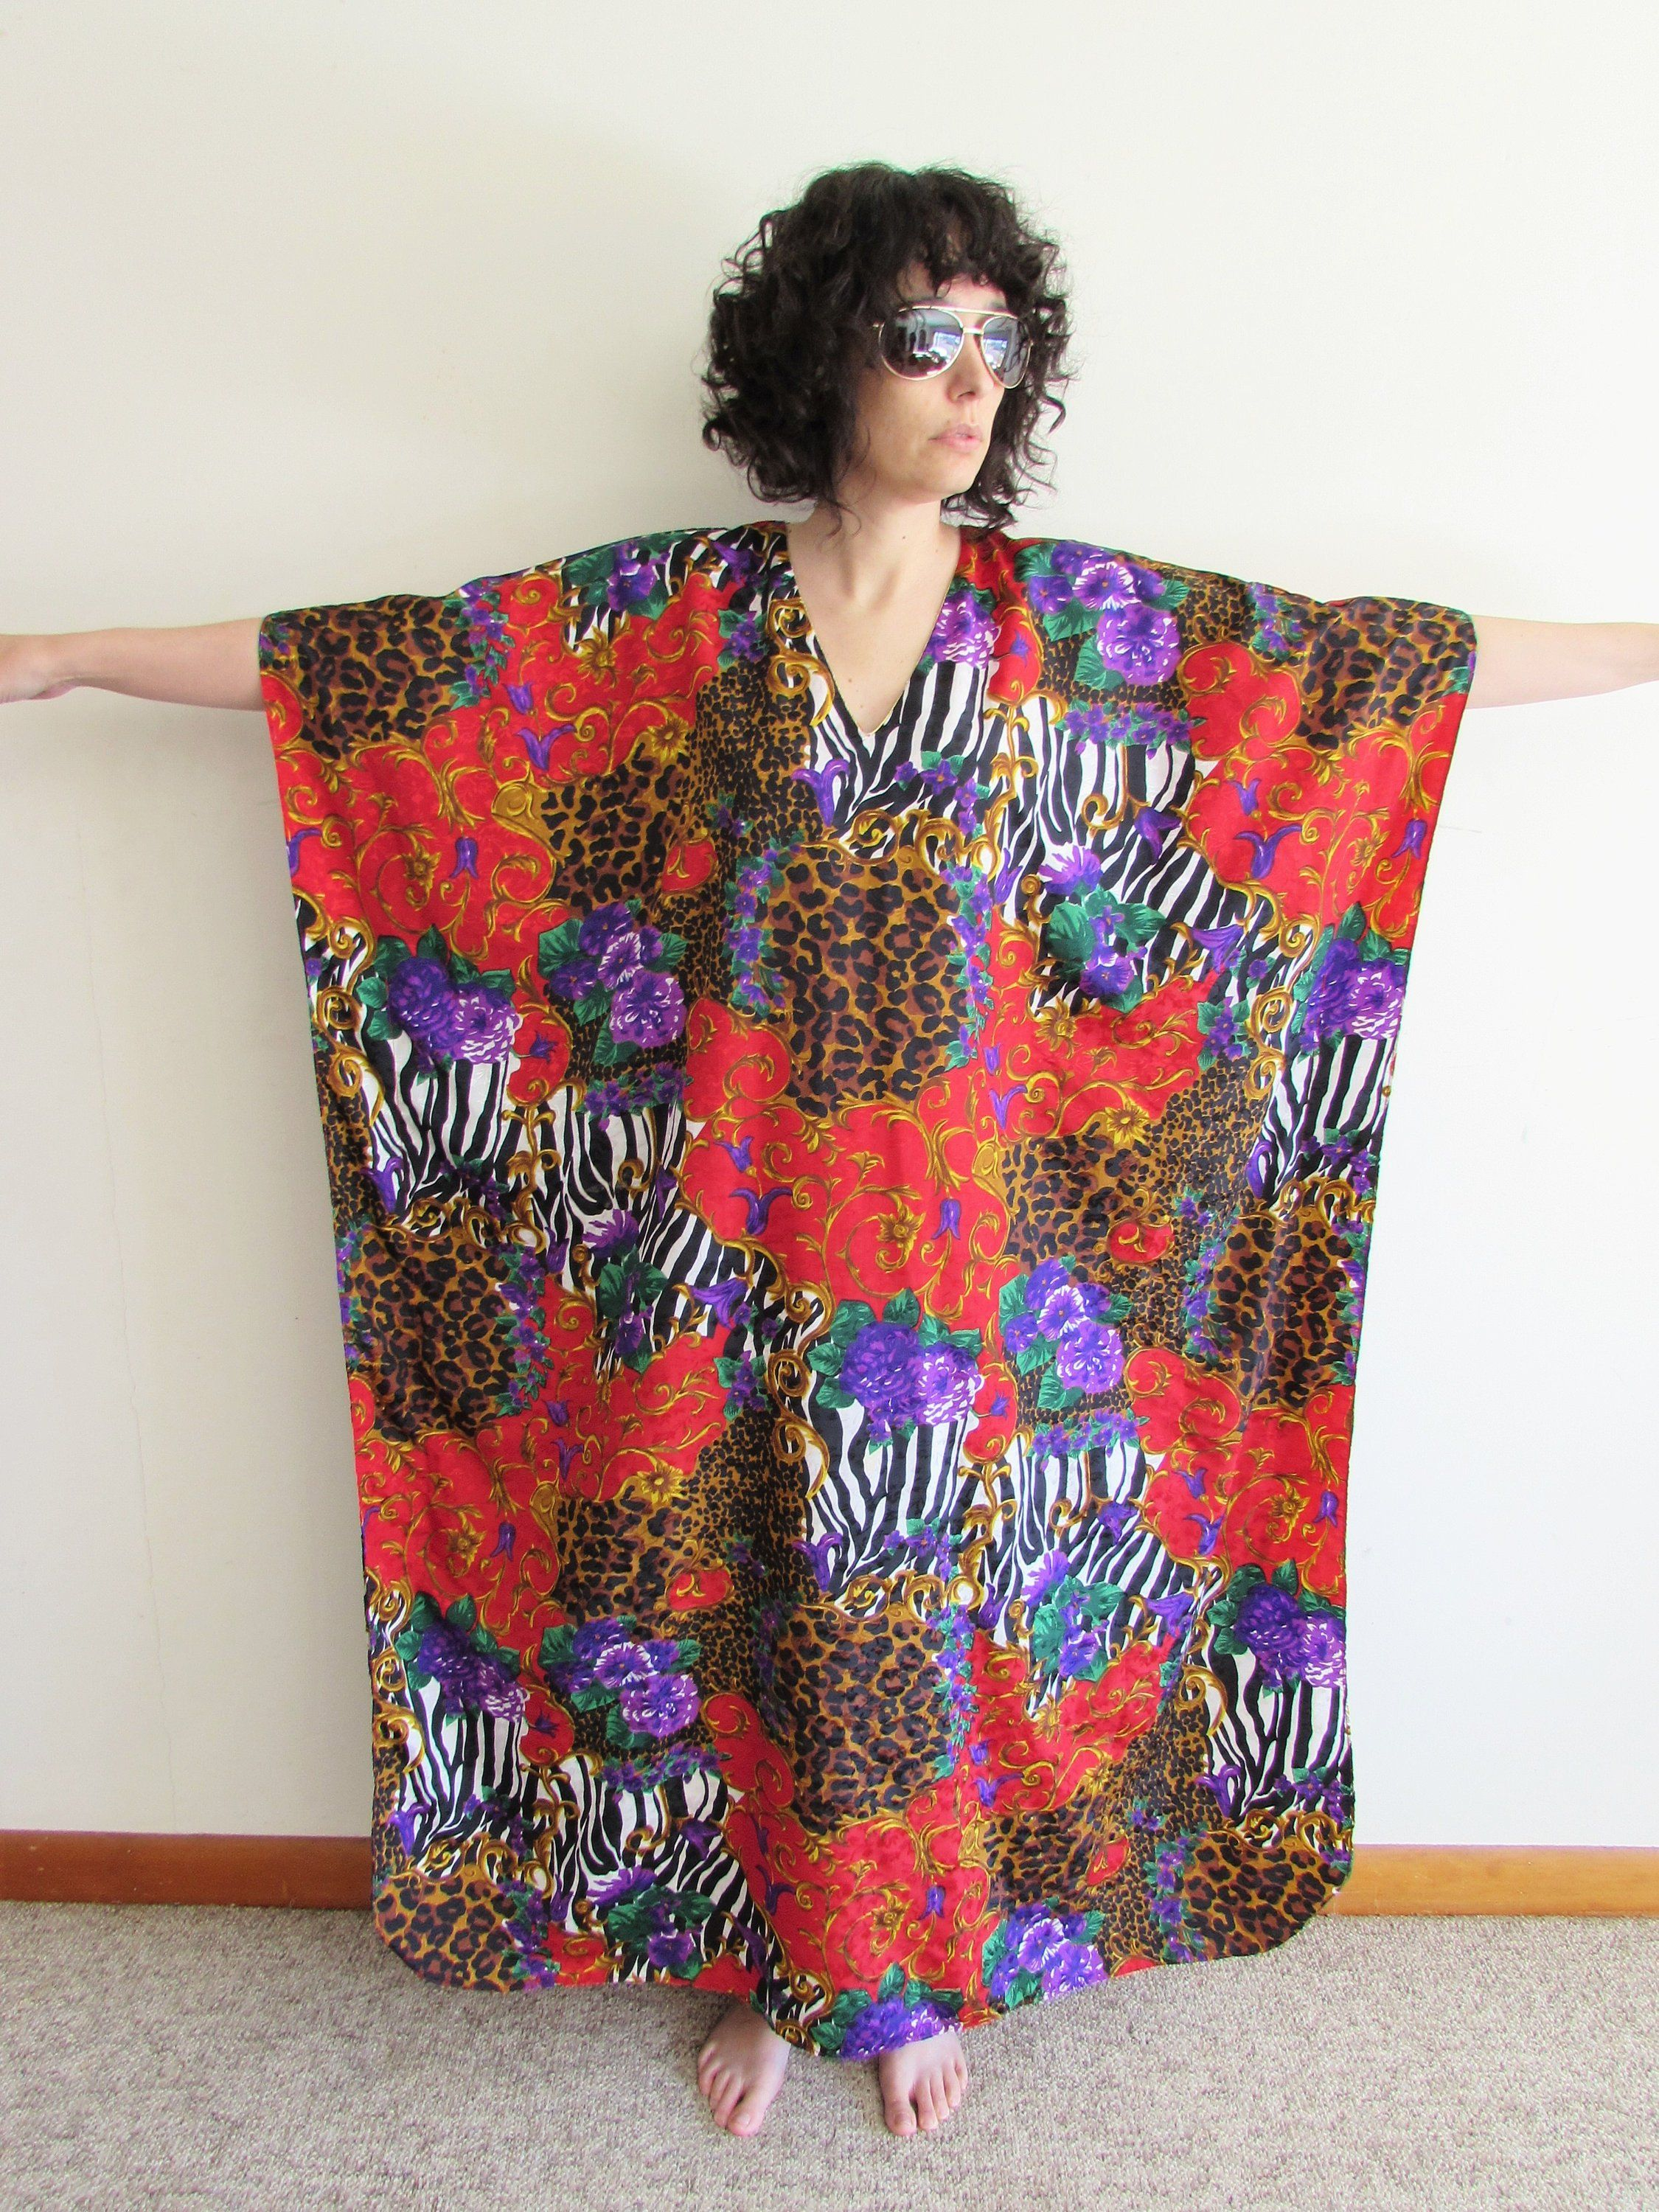 c3398346914d94 Vintage Winlar Kaftan 1980s 1990s Animal Print Floral Gucci Style House  Dress Muumuu One Size